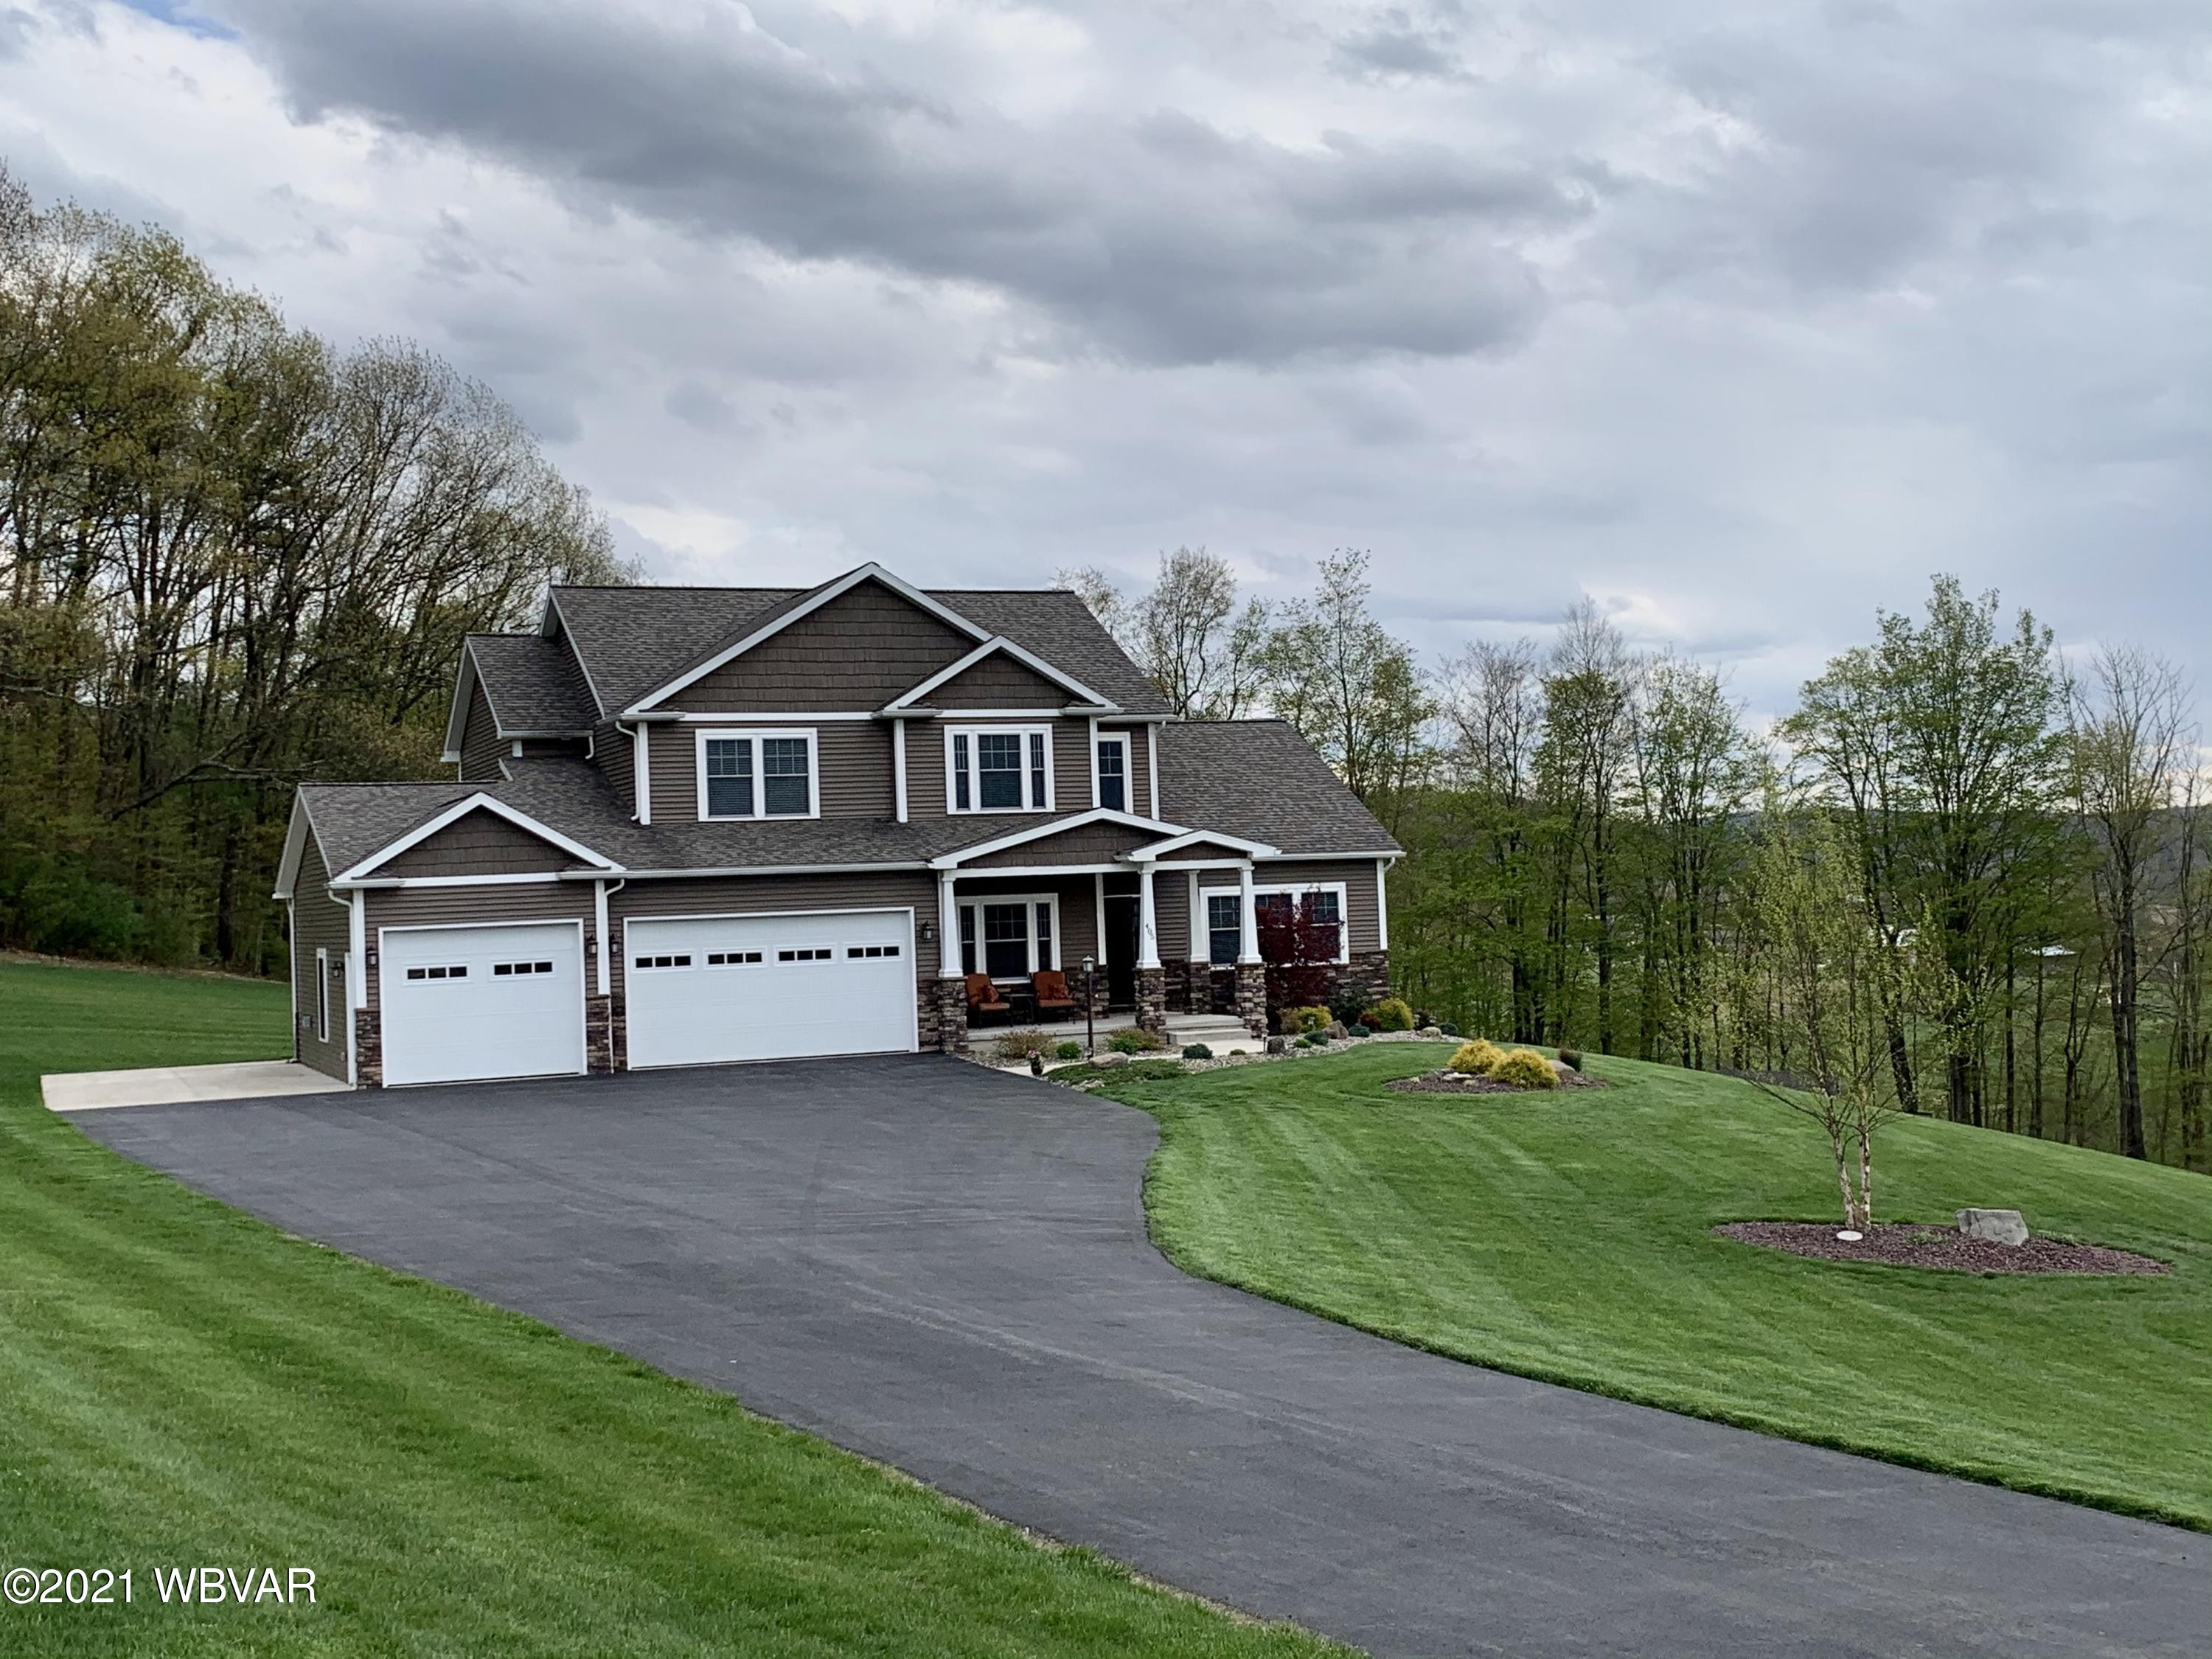 405 LINVIC DRIVE, Muncy, PA 17756, 4 Bedrooms Bedrooms, ,4 BathroomsBathrooms,Residential,For sale,LINVIC,WB-91731